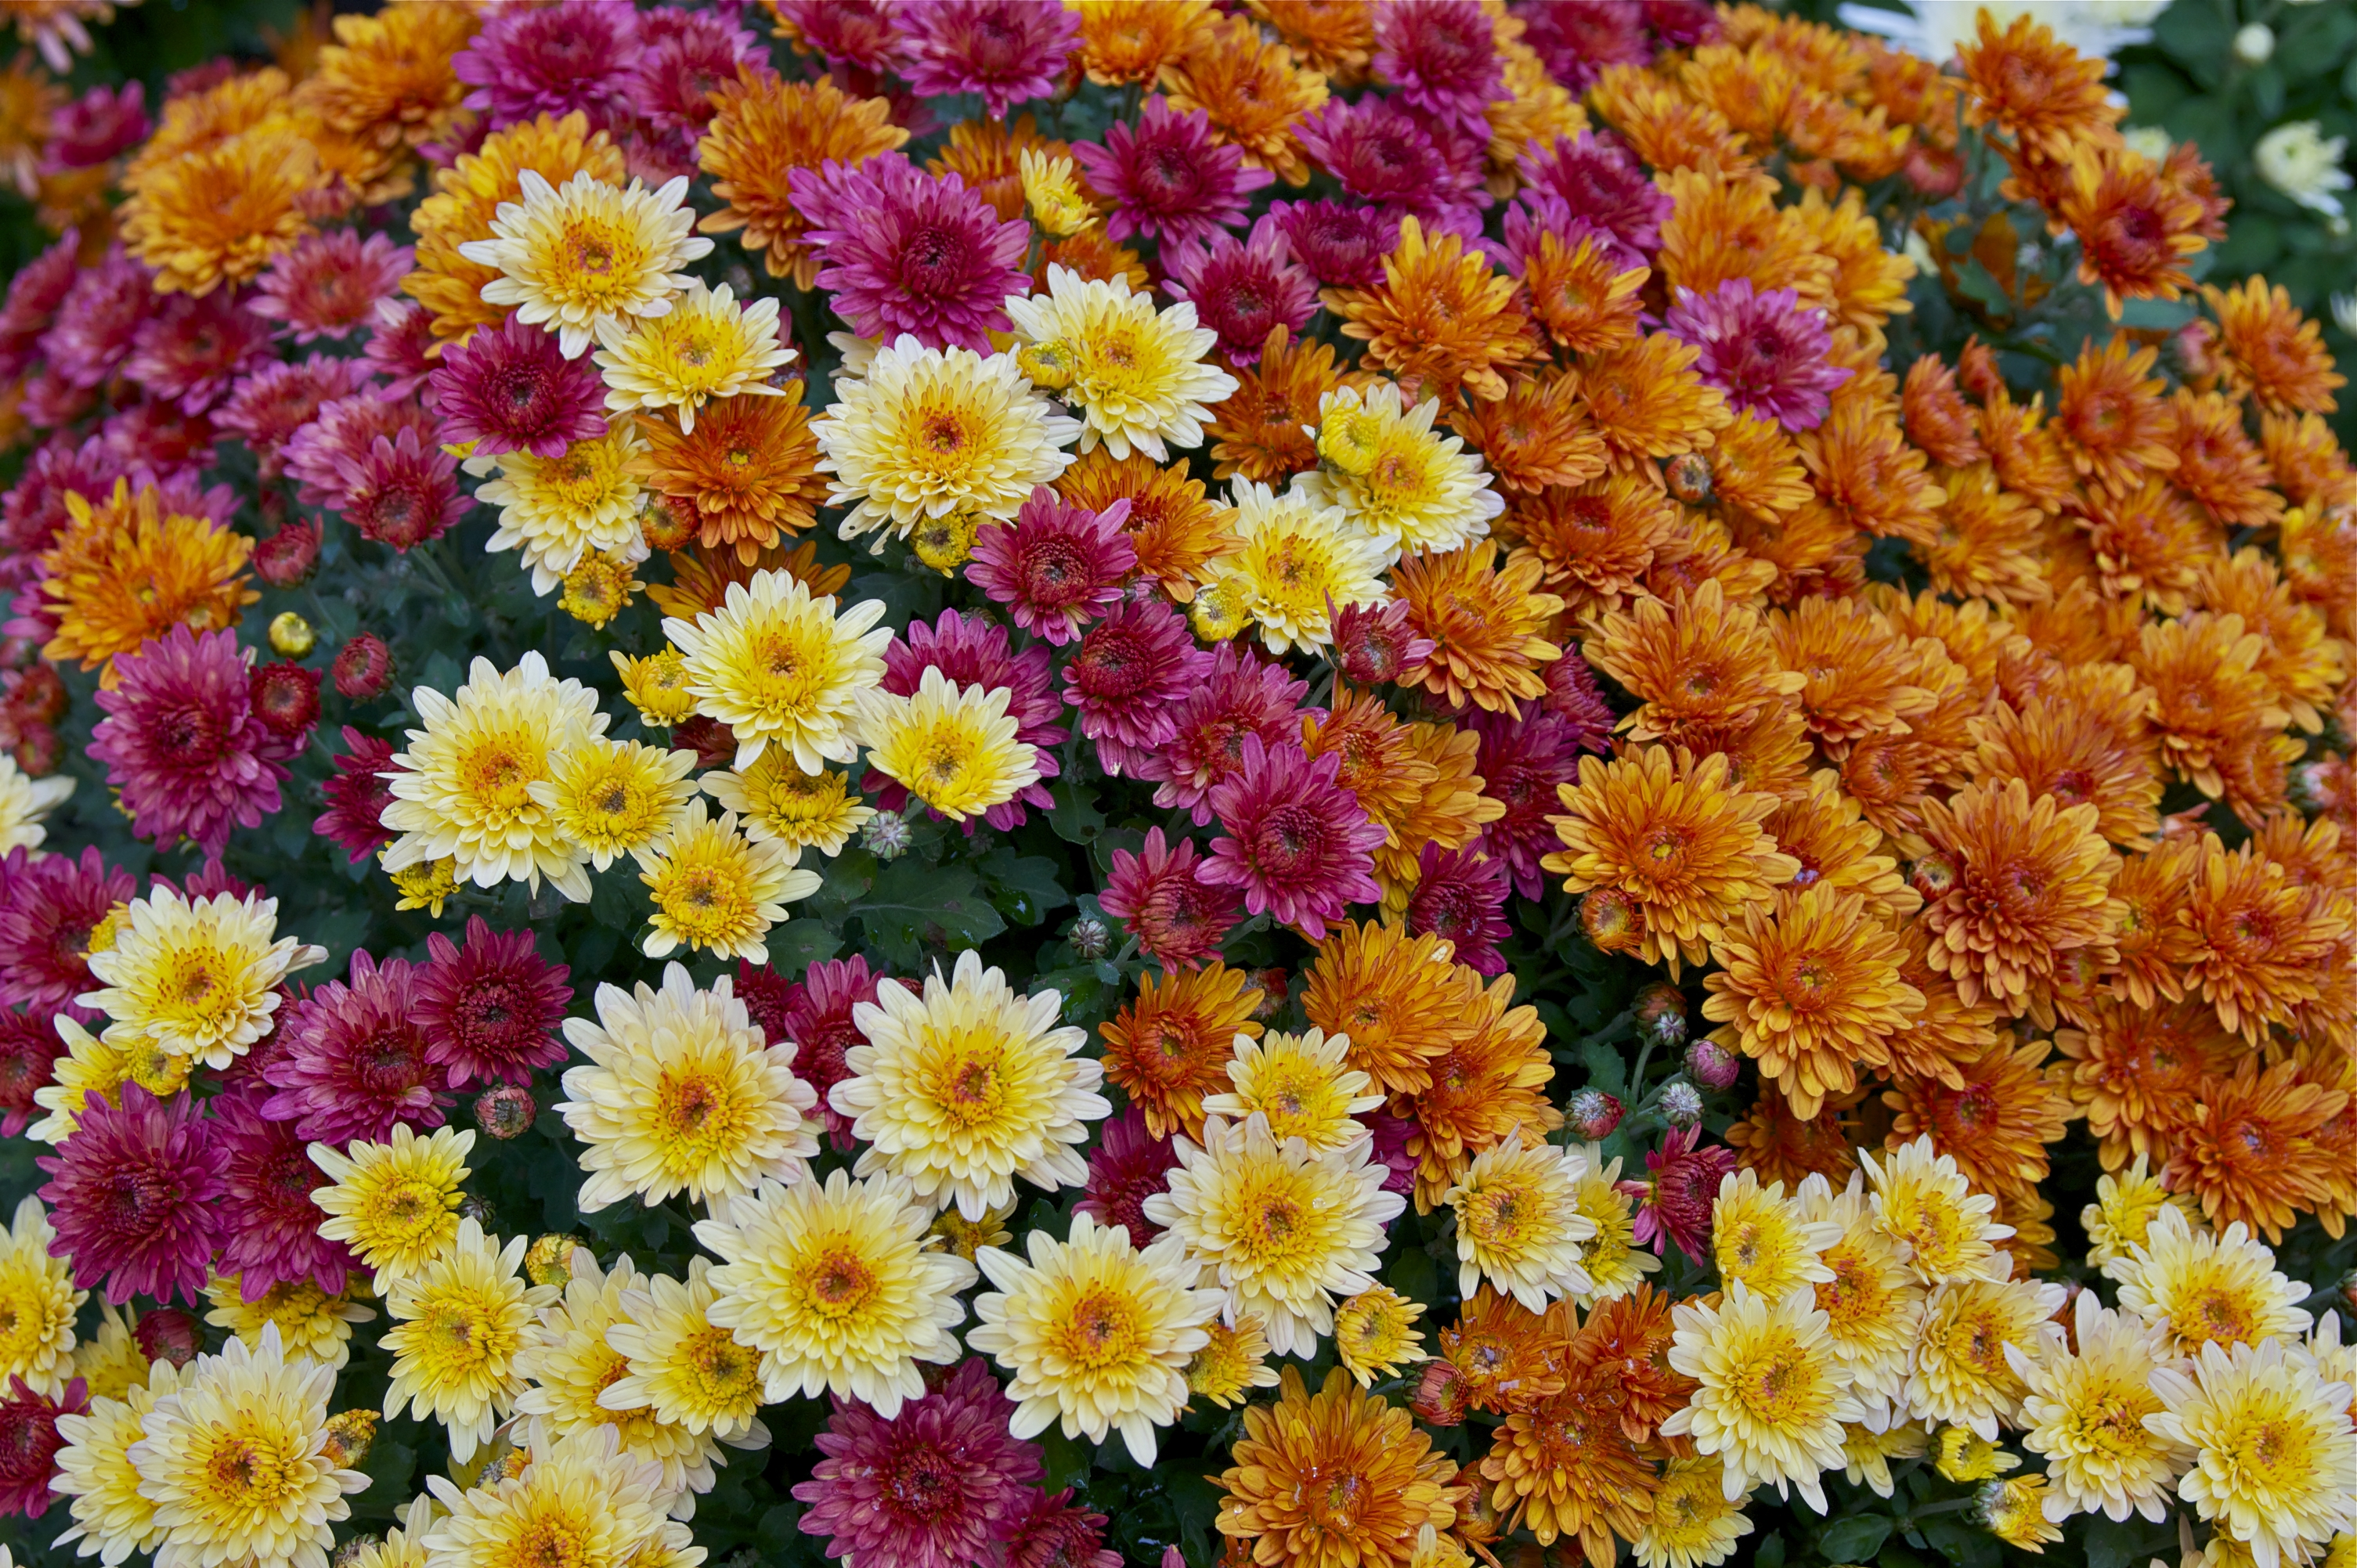 Chrysanthemum Wikipedia